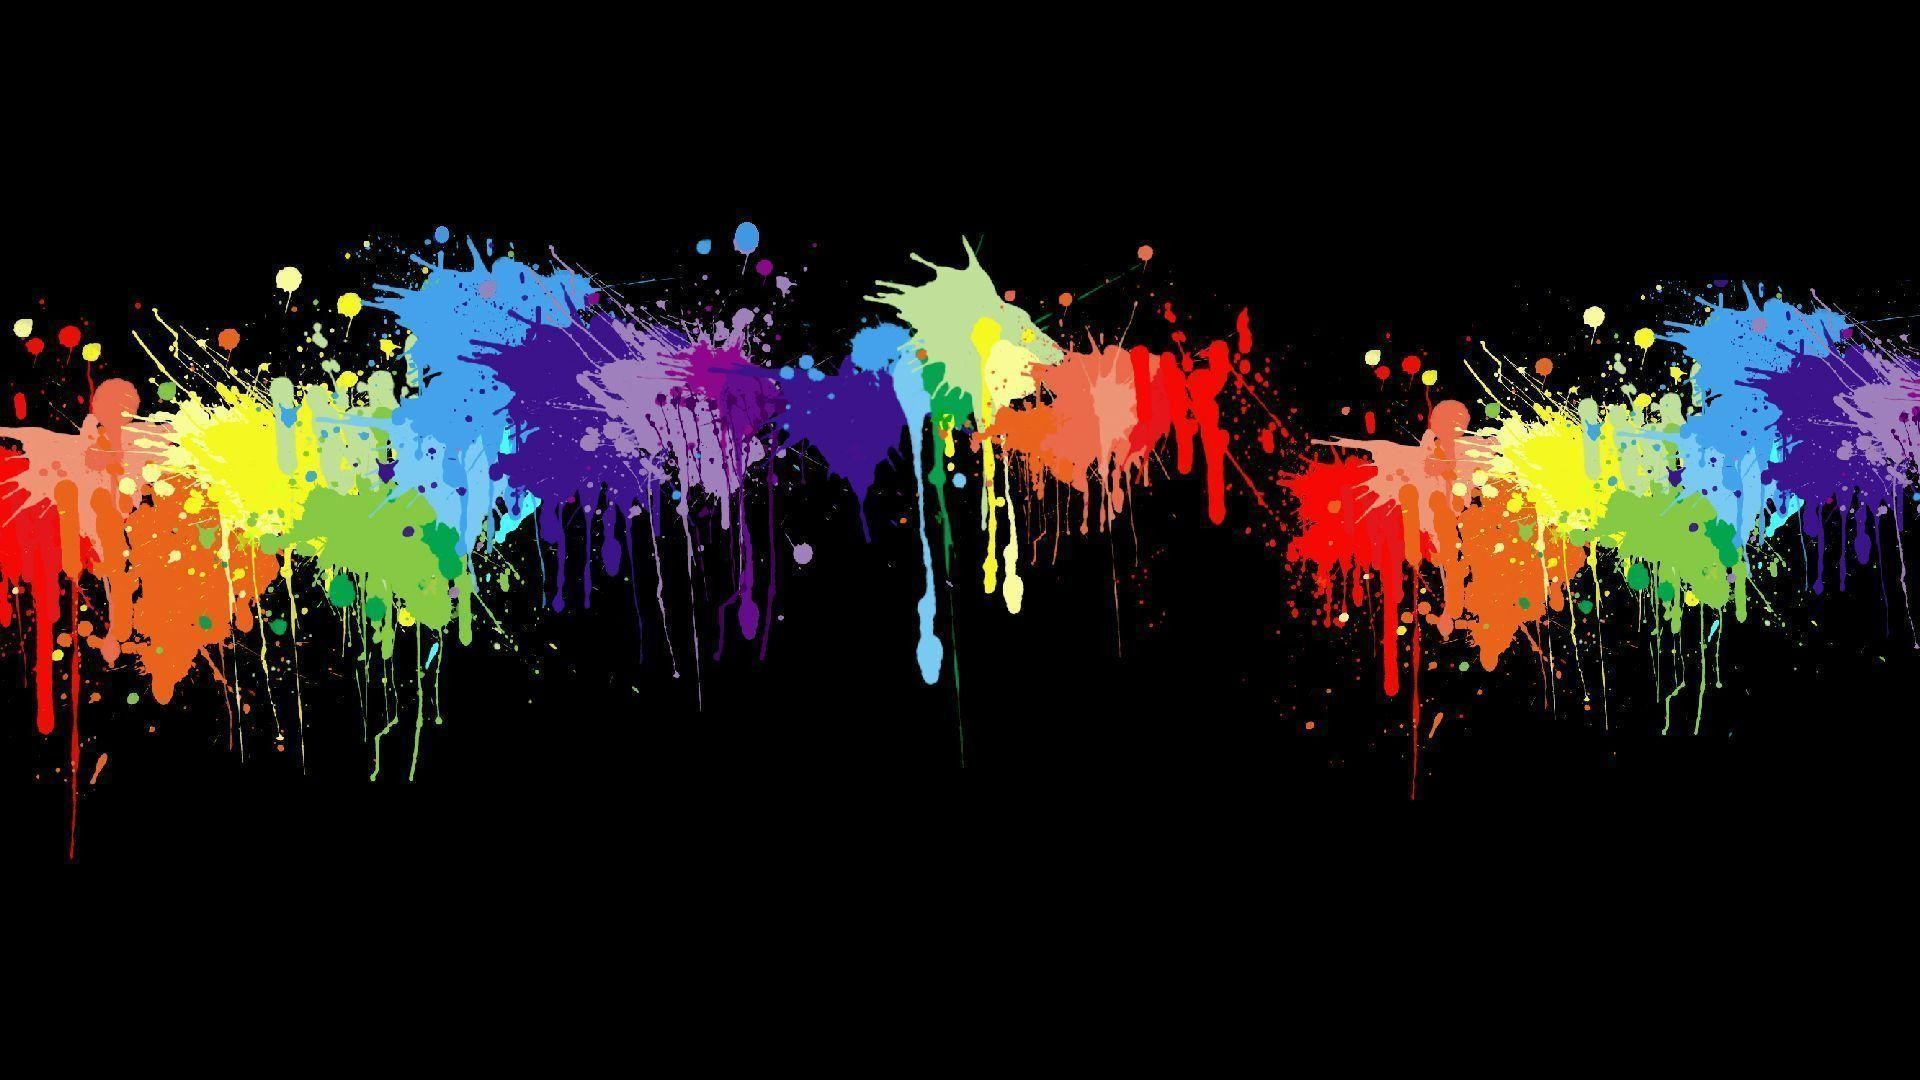 1920x1080 Paint Splash Wallpapers Full Hd Wallpaper White Background taken .